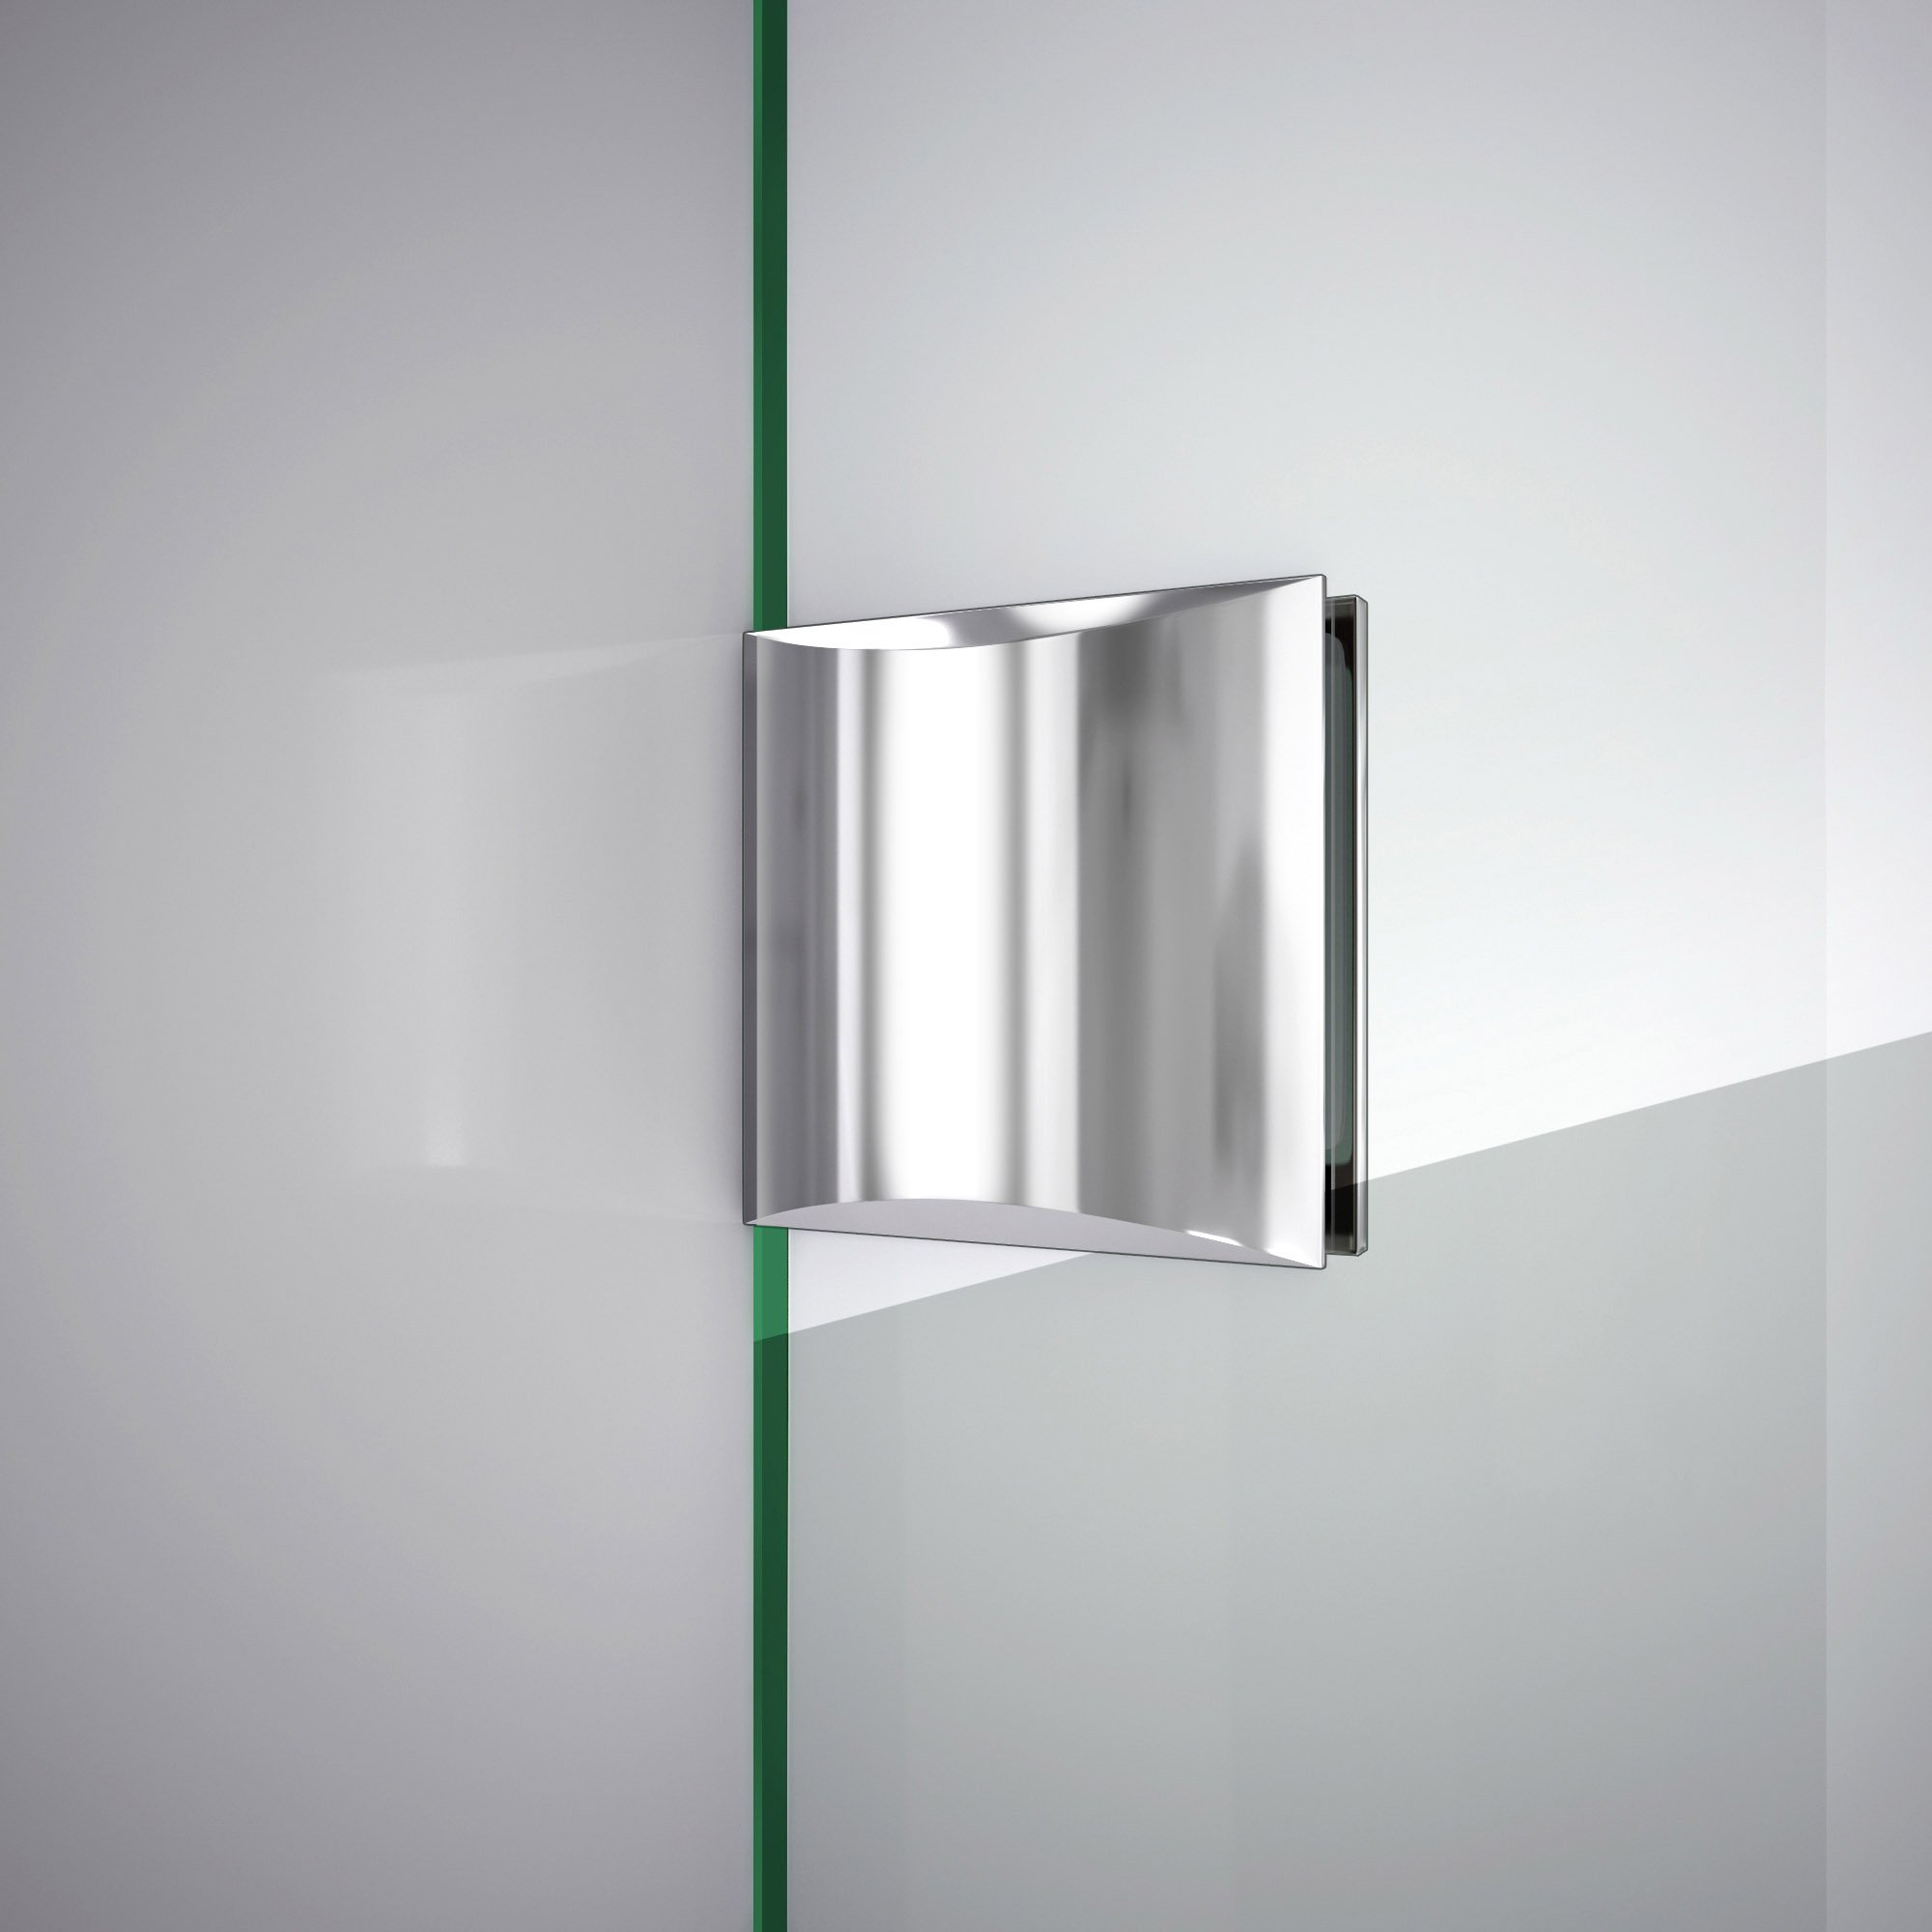 DreamLine Unidoor Lux 56 in. Width, Frameless Hinged Shower Door, 3/8'' Glass, Chrome Finish by DreamLine (Image #7)